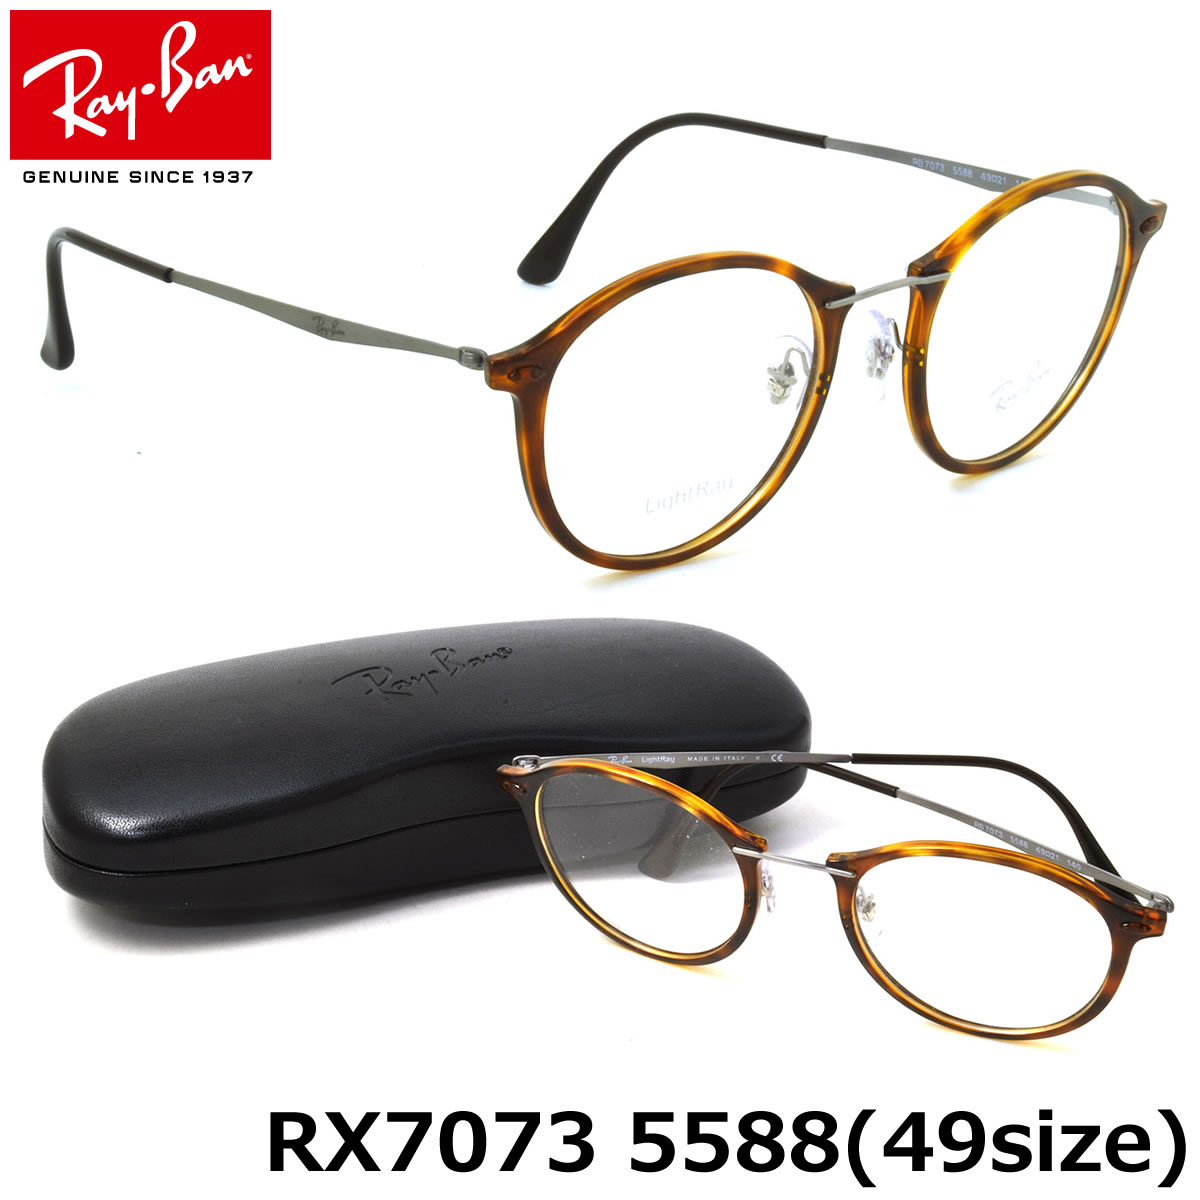 (Ray-Ban) tech light Ray glasses frames RX7073 5588 49 size round round  glasses ROUND Ray-Ban RAYBAN TECH ROUND LIGHT RAY men s women s b5c689028f6e